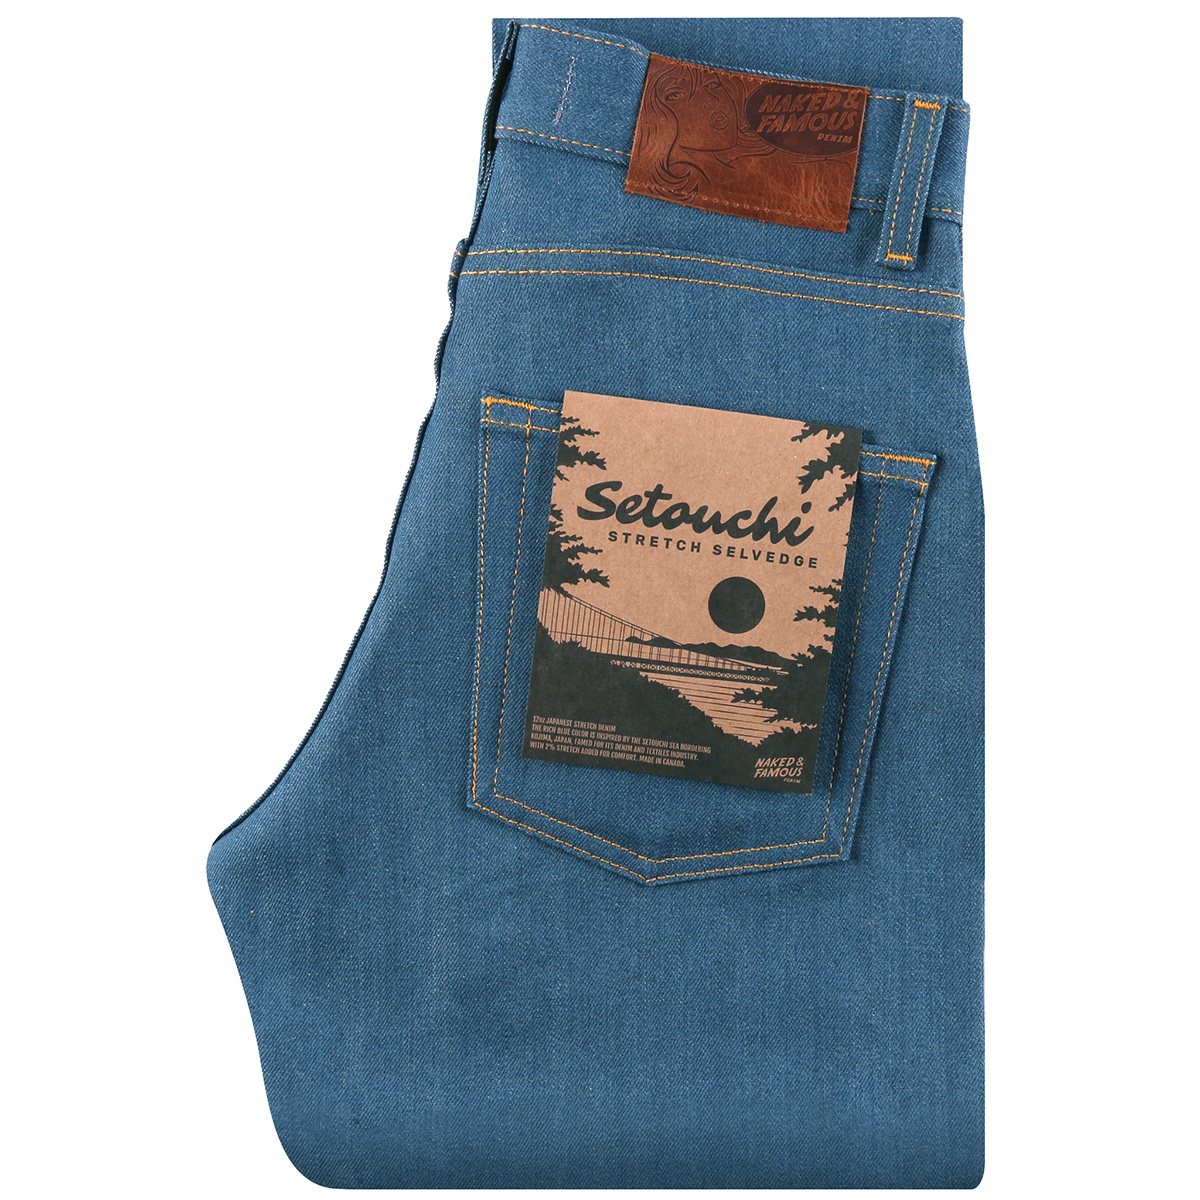 SETOUCHI STRETCH SELVEDGE - High Skinny / Max